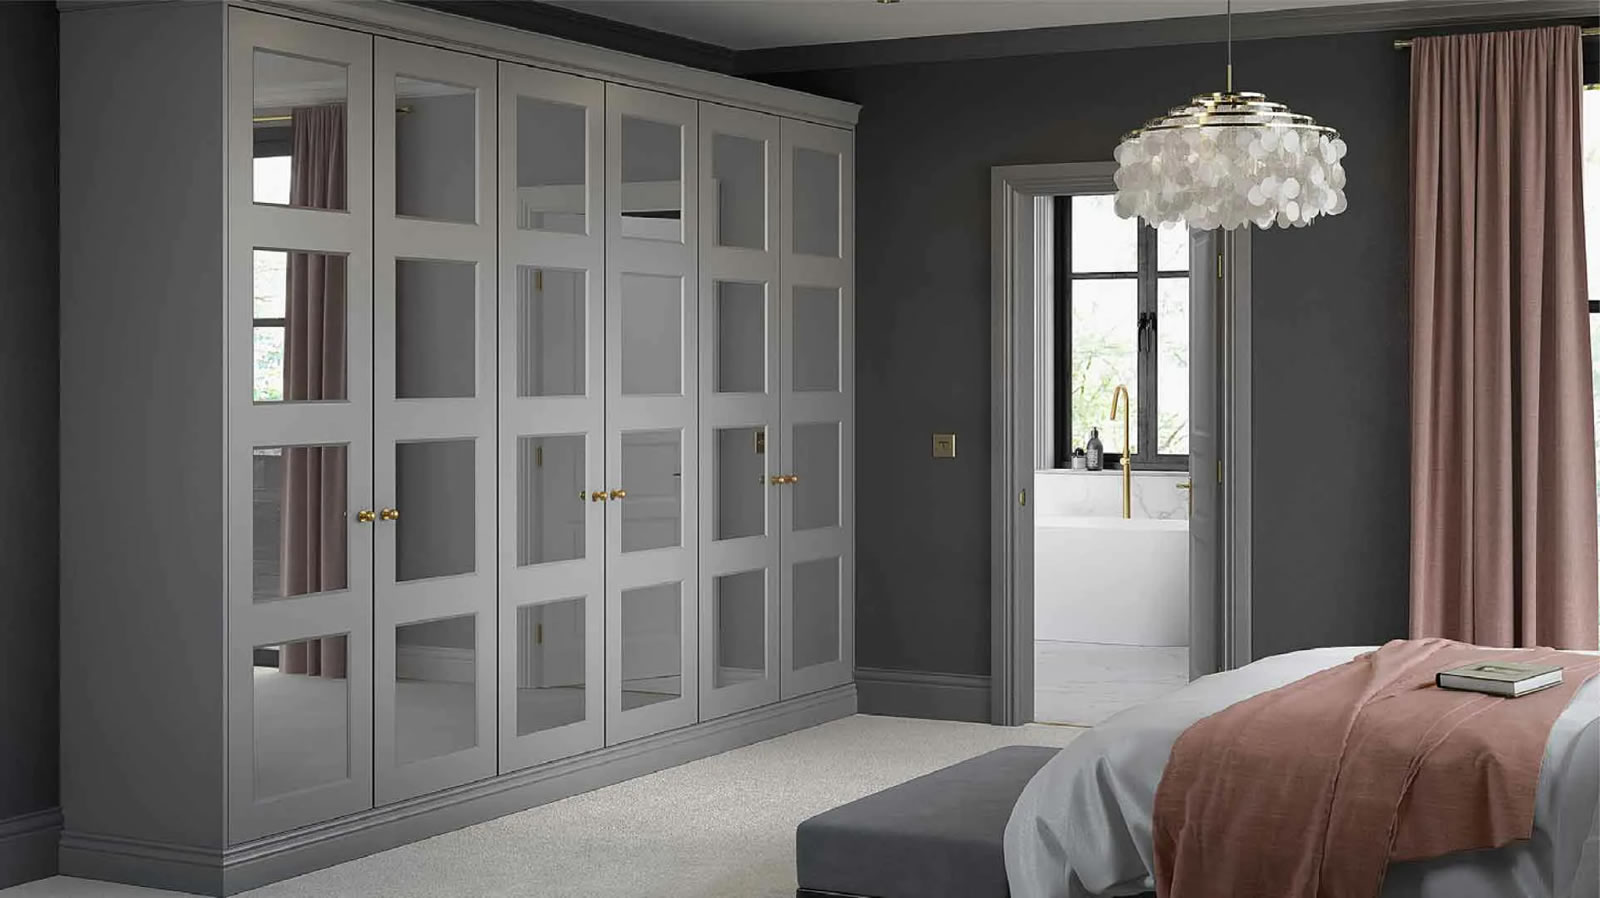 Mya fitted Bedrooms 4 Panel Eclipse shown in Swiss Dust Grey